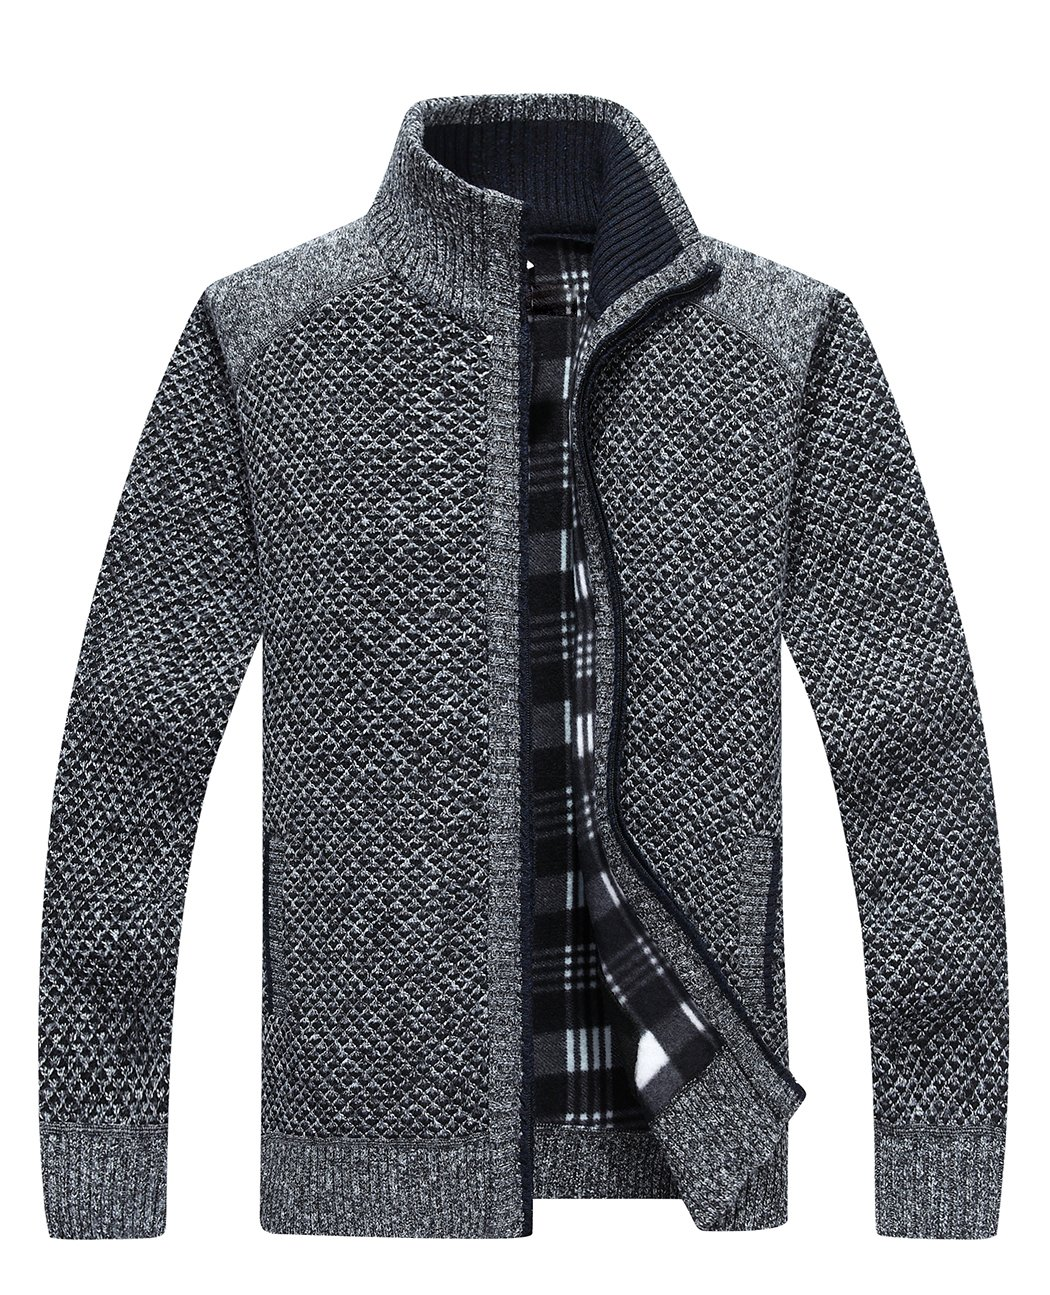 Vcansion Mens Casual Zip Knitted Cardigan Sweater Business Sweater Dark Grey US L/Asian 2XL